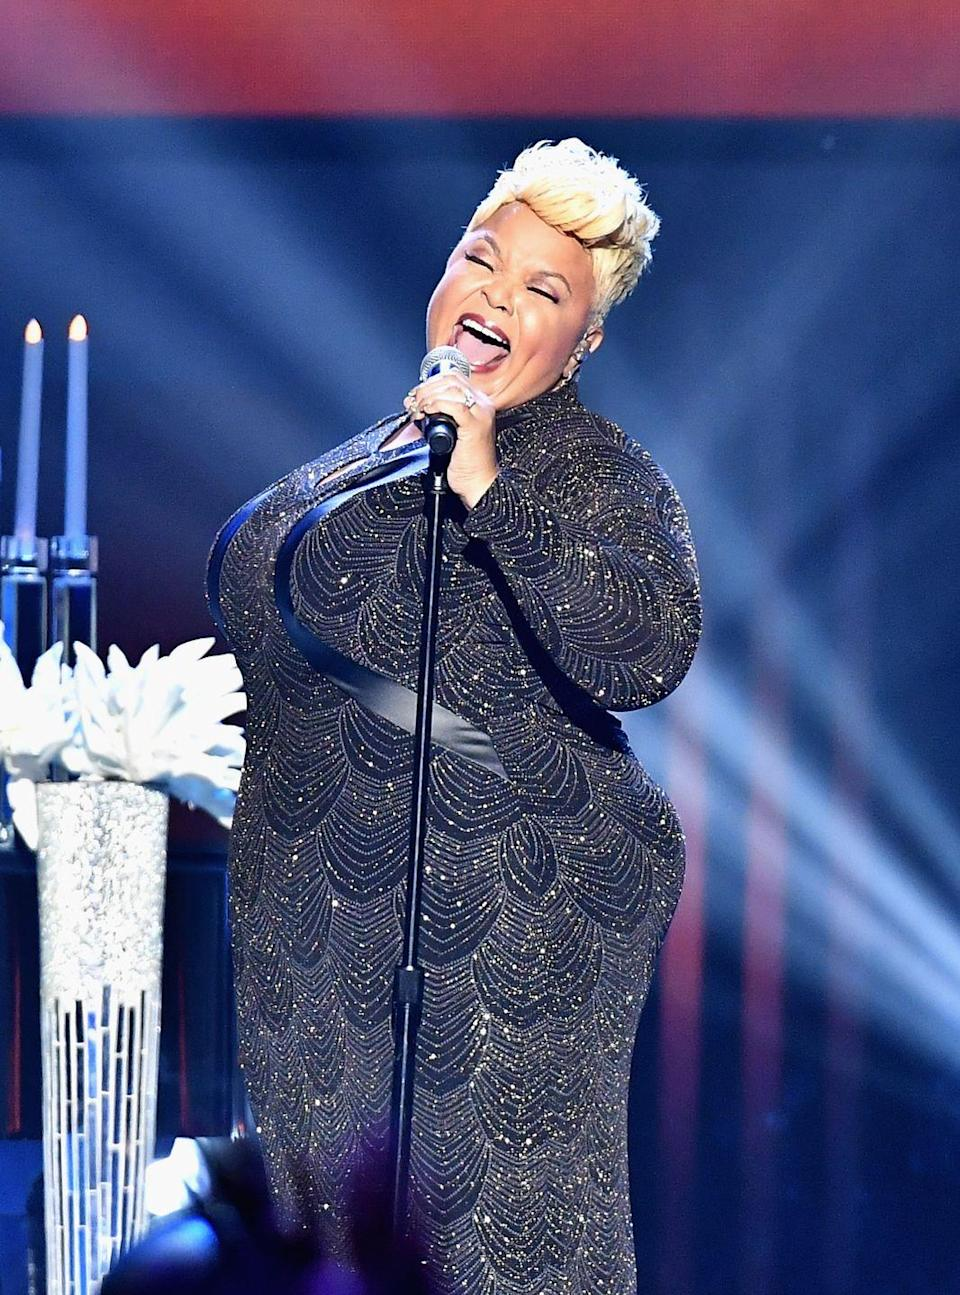 """<p>Gospel superstar Tamela Mann switches styles frequently, but some of her most renowned musical moments have featured her extra pale, cool-toned blonde. However, blonde this pale requires special products for maintenance. """"When you lighten your hair and go up the yellow scale, the yellow can pop out more prominently as your toner fades over time. Purple shampoo helps neutralize the yellow by giving your hair a cooler tone to help prolong your blonde between salon visits,"""" explains Querisma. </p>"""